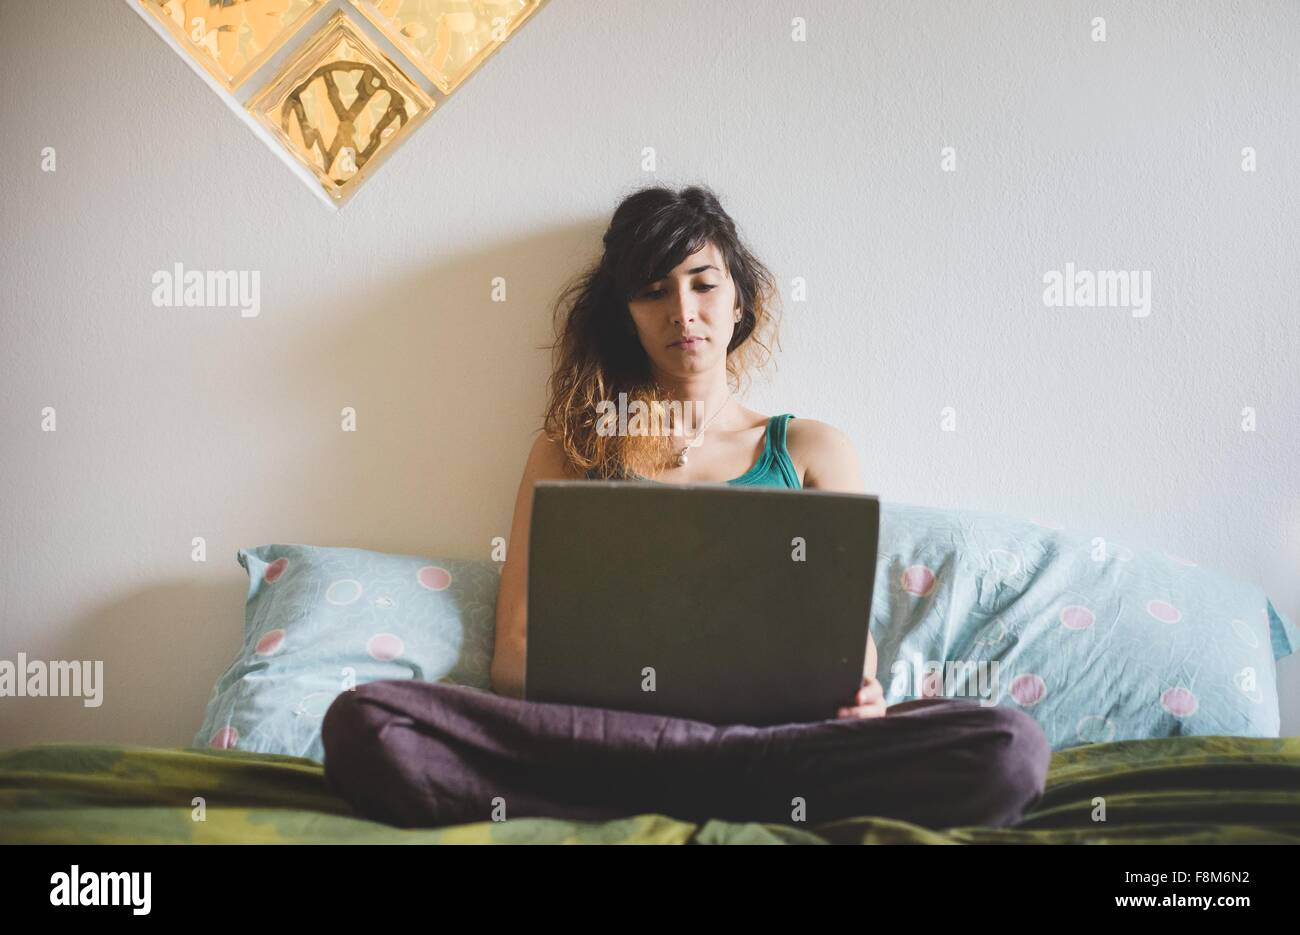 Front view of mid adult woman sitting cross legged on bed using laptop computer - Stock Image